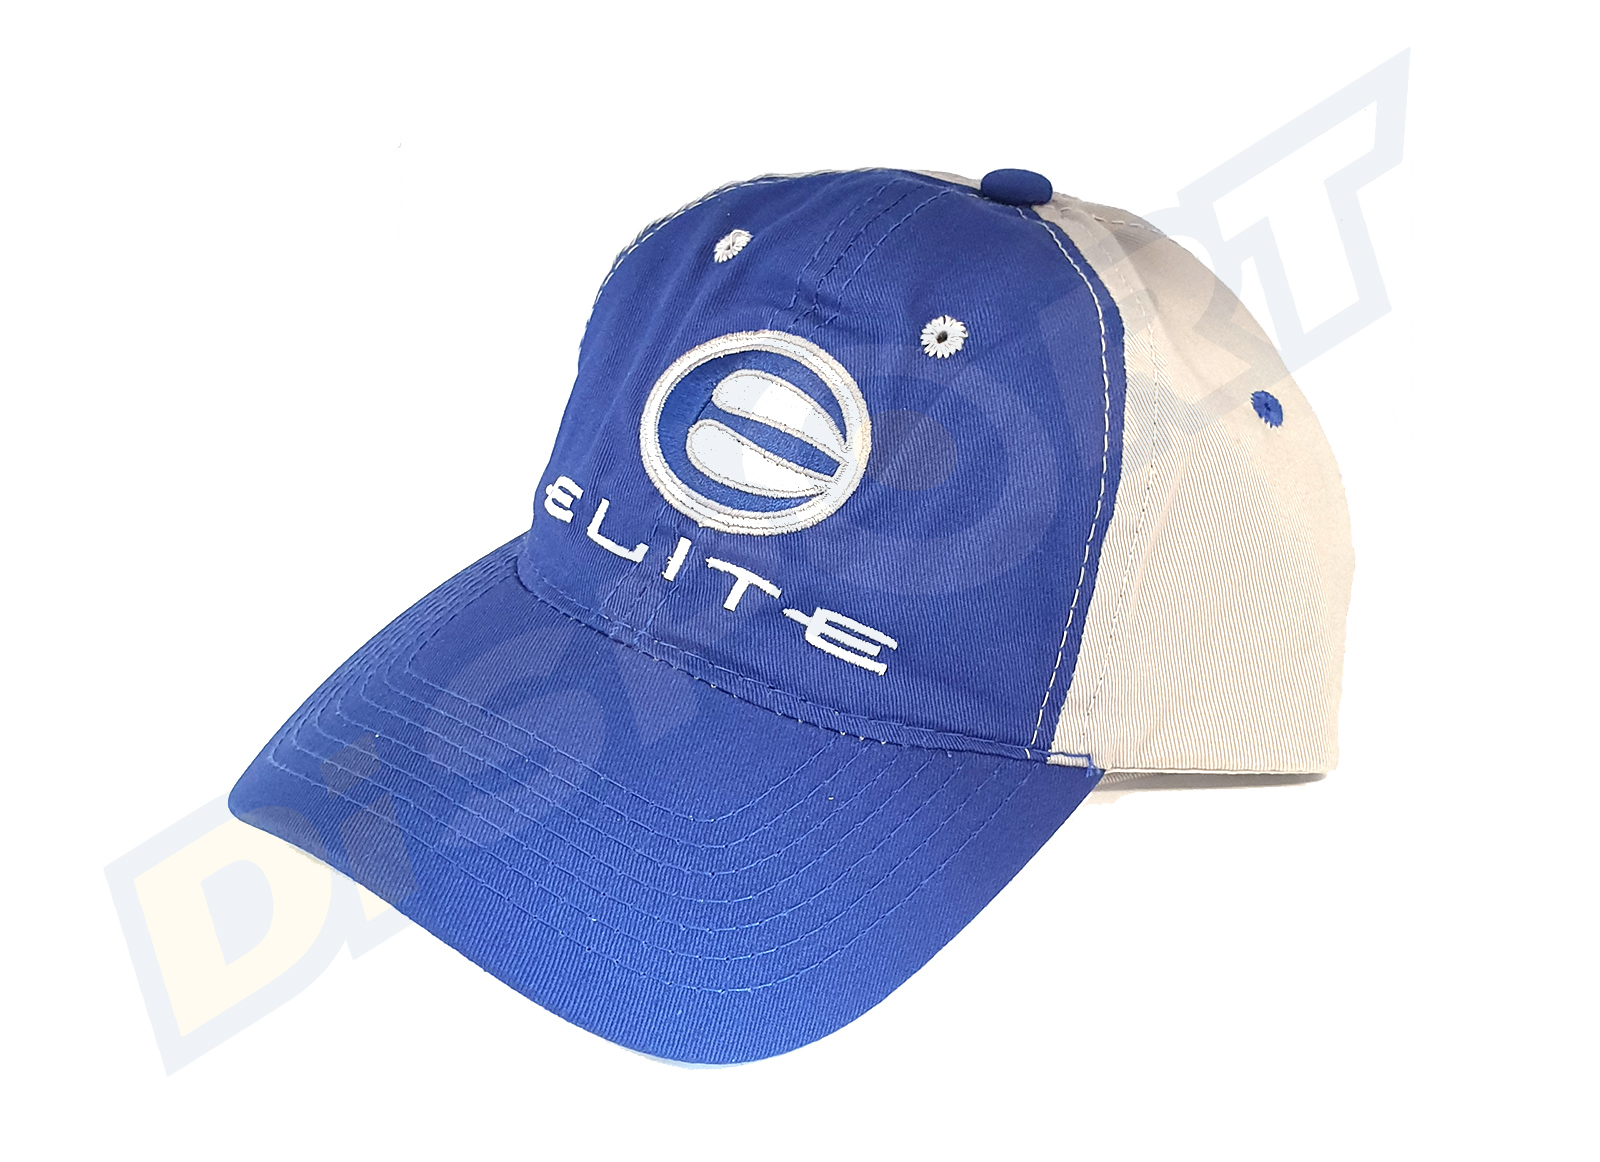 ELITE ARCHERY BRAND CAP